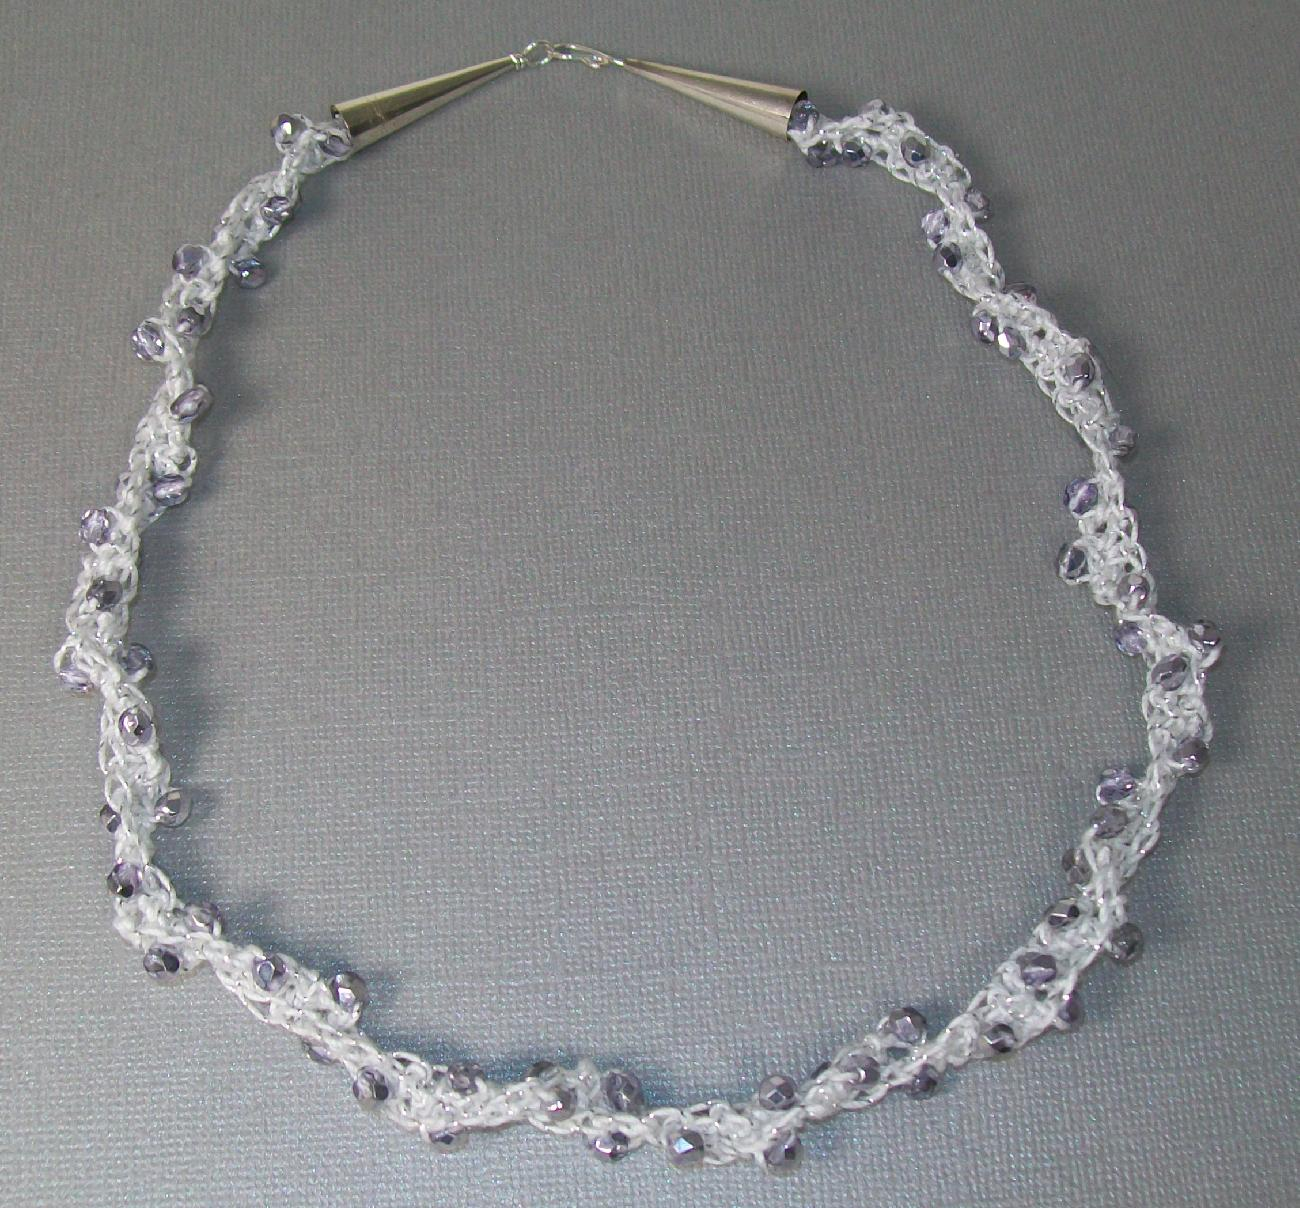 Here is the necklace I made using the beads I purchased yesterday at ...